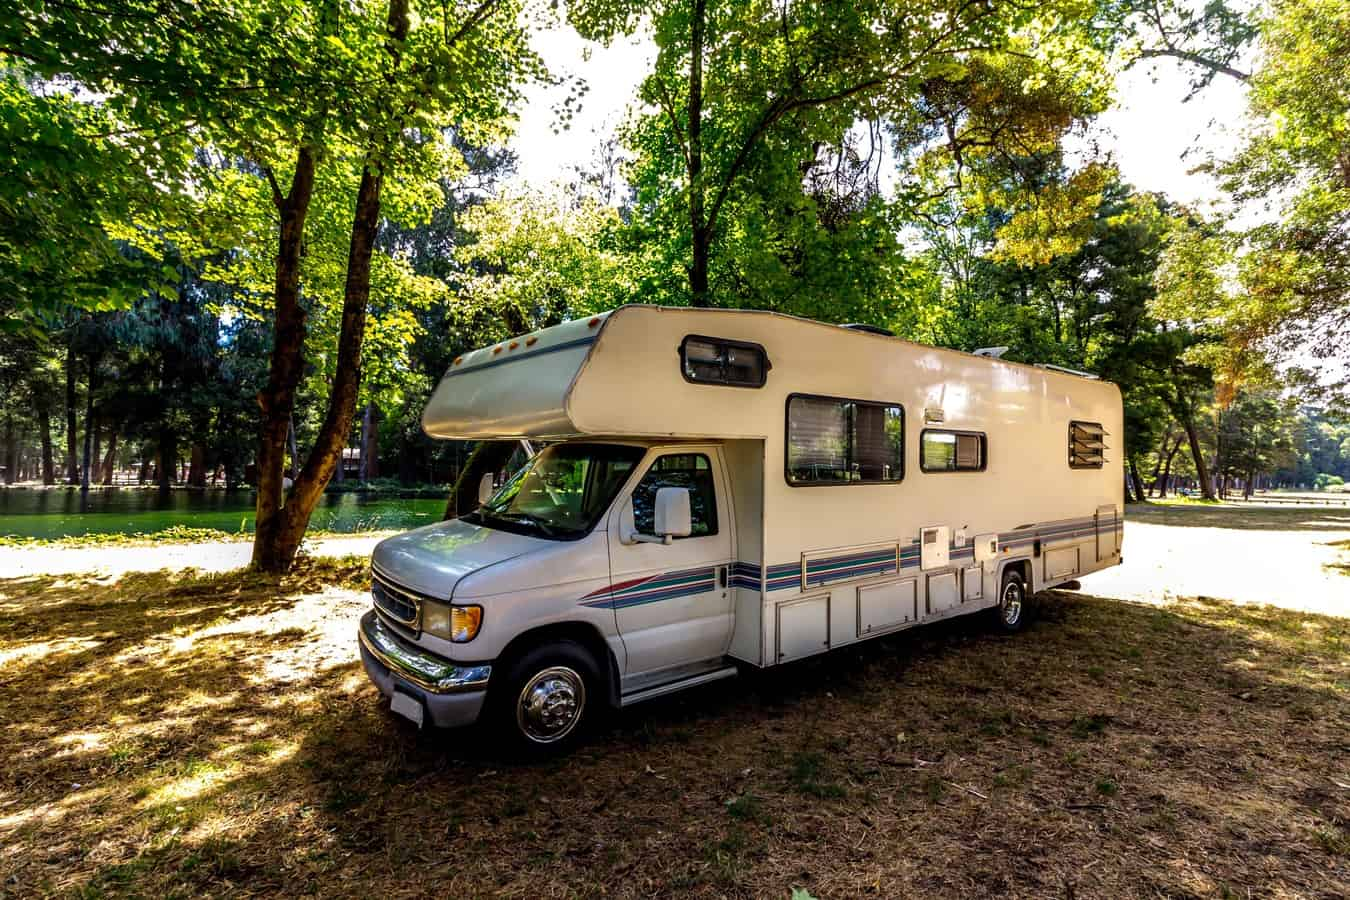 Motorhome Classes: A simple guide with pictures, prices, and details